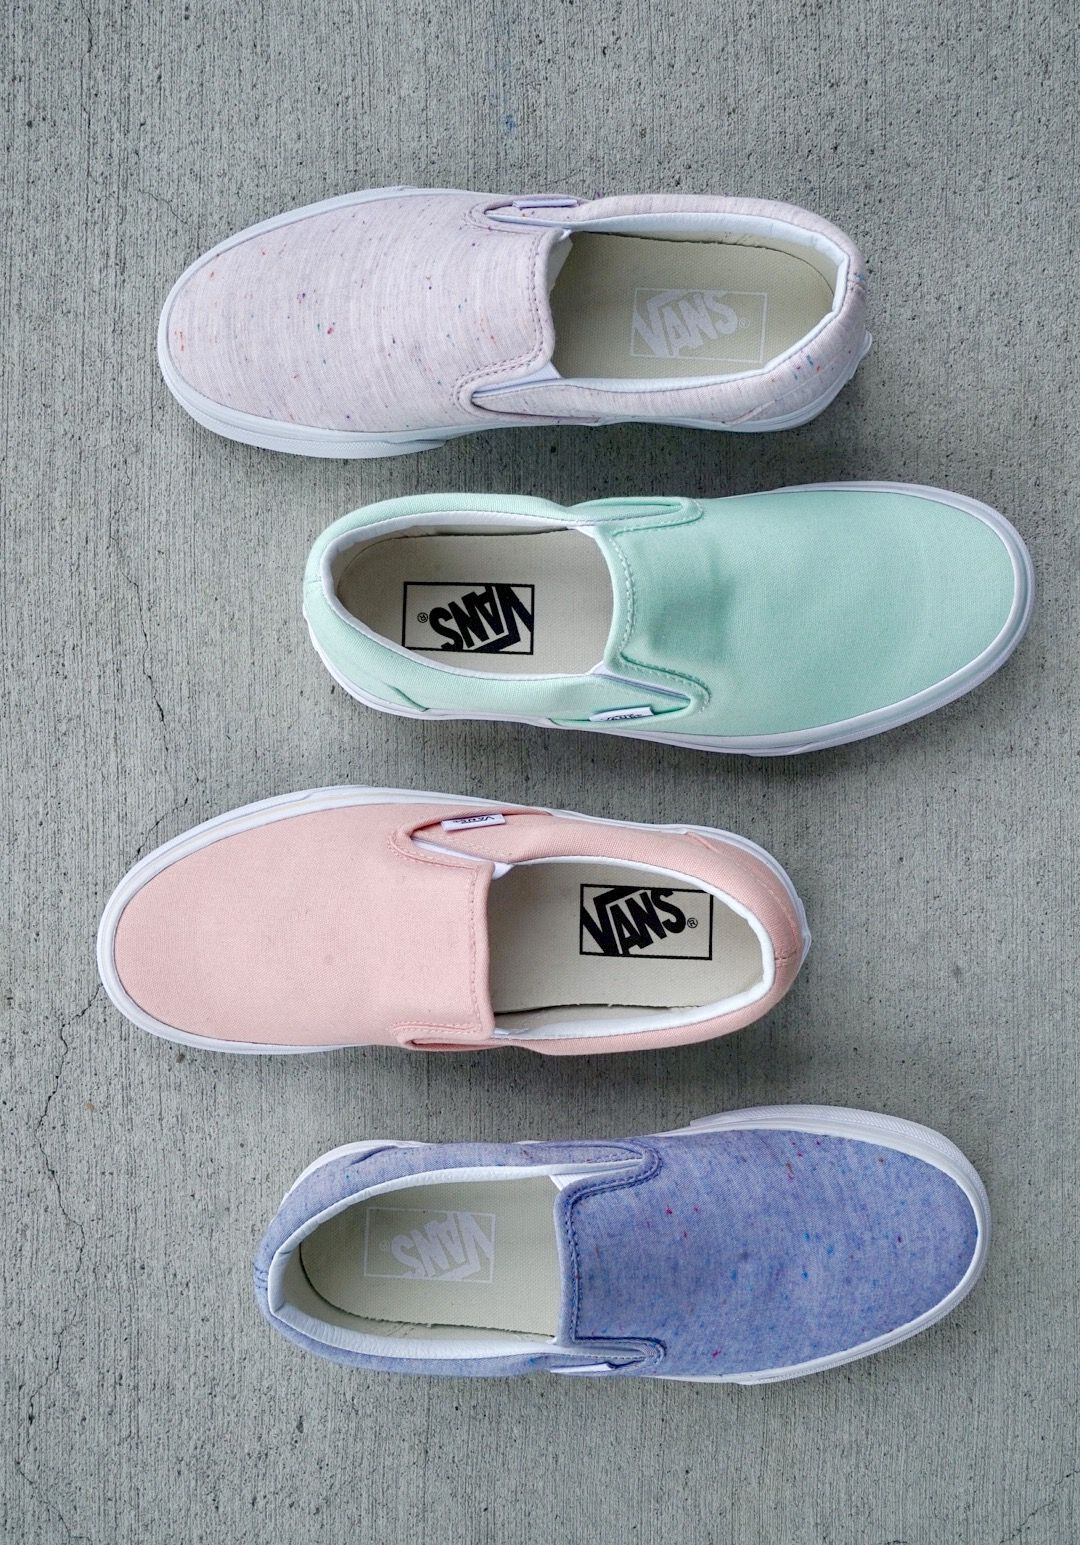 5f3957515c3e New Spring Slip-Ons from Vans! How do you choose!